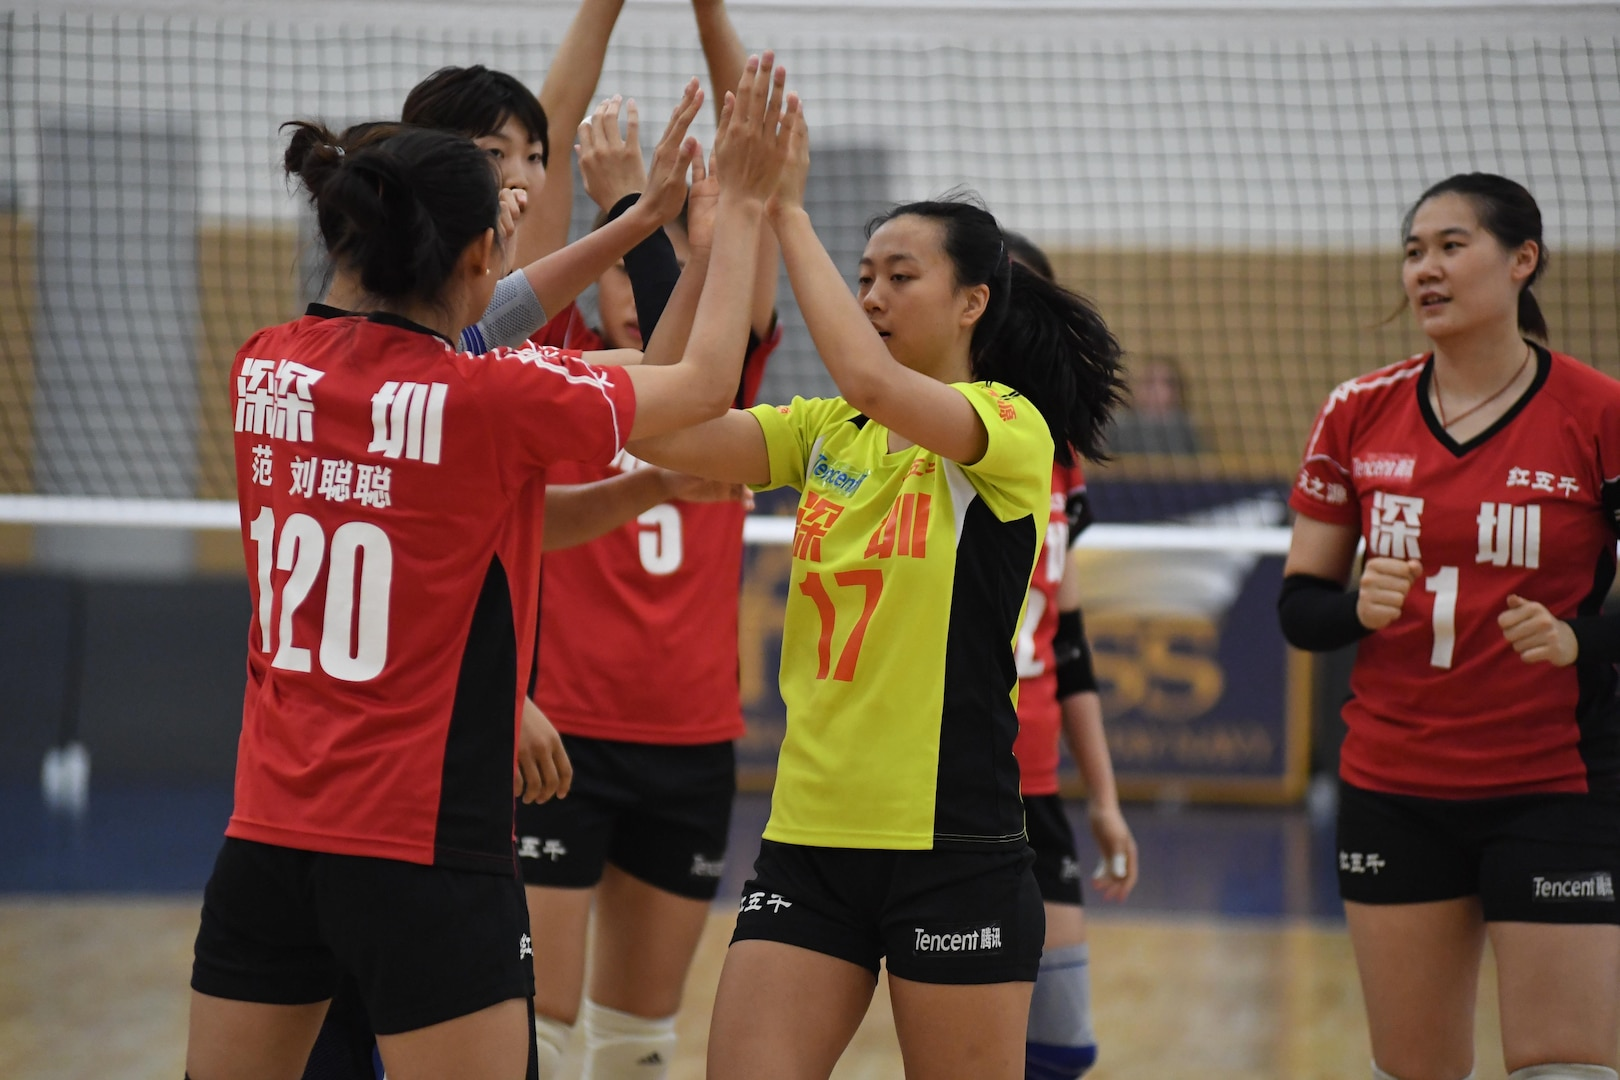 China wins the 18th Conseil International du Sport Militaire (CISM) World Women's Volleyball Military Championship on 9 June 2017 at Naval Station Mayport, Florida.